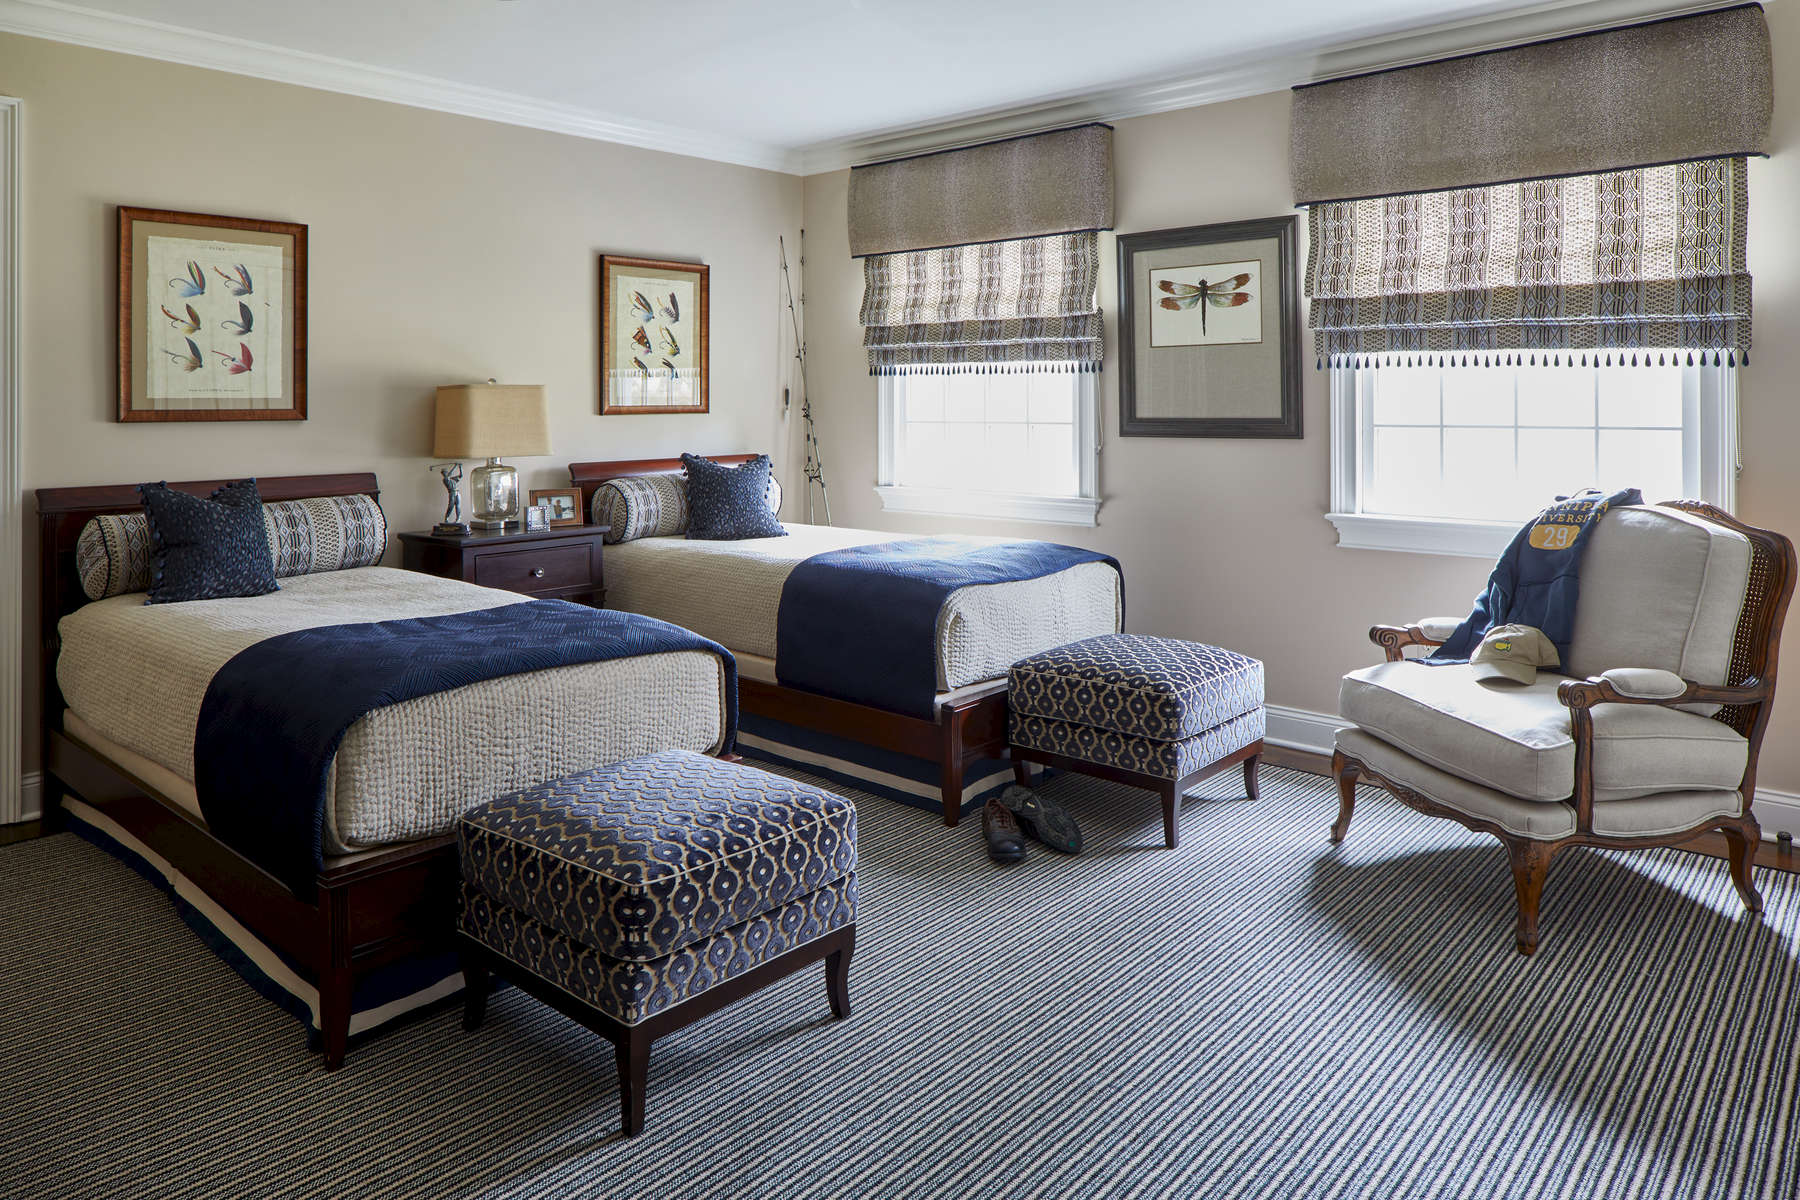 boys bedroom with twin beds in navy and taupe stanton burke midnight area rug